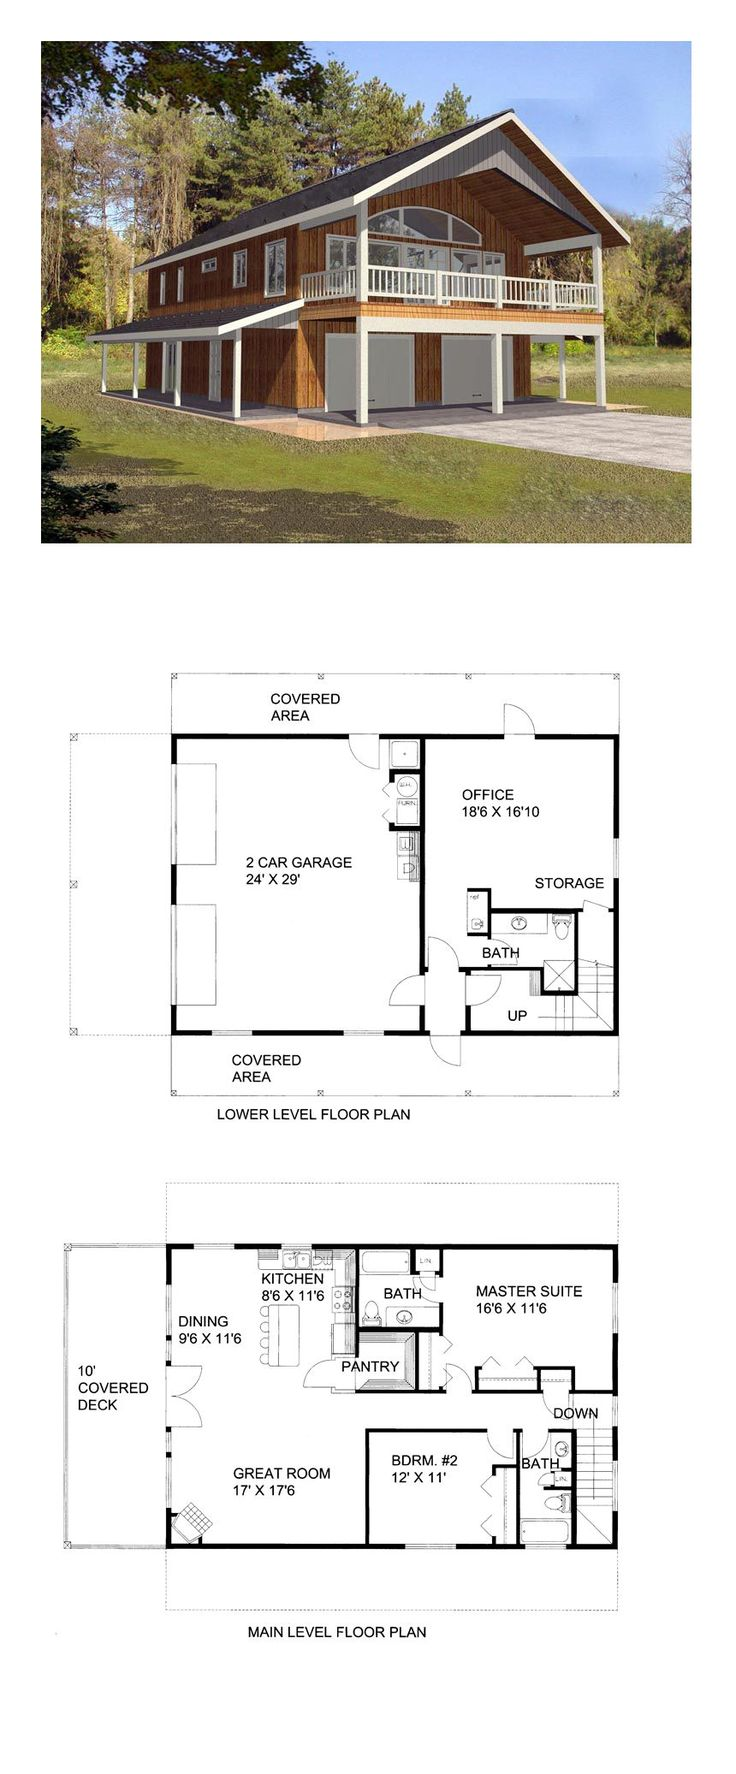 49 best garage apartment plans images on pinterest garage 49 best garage apartment plans images on pinterest garage apartments garage apartment plans and arquitetura solutioingenieria Choice Image